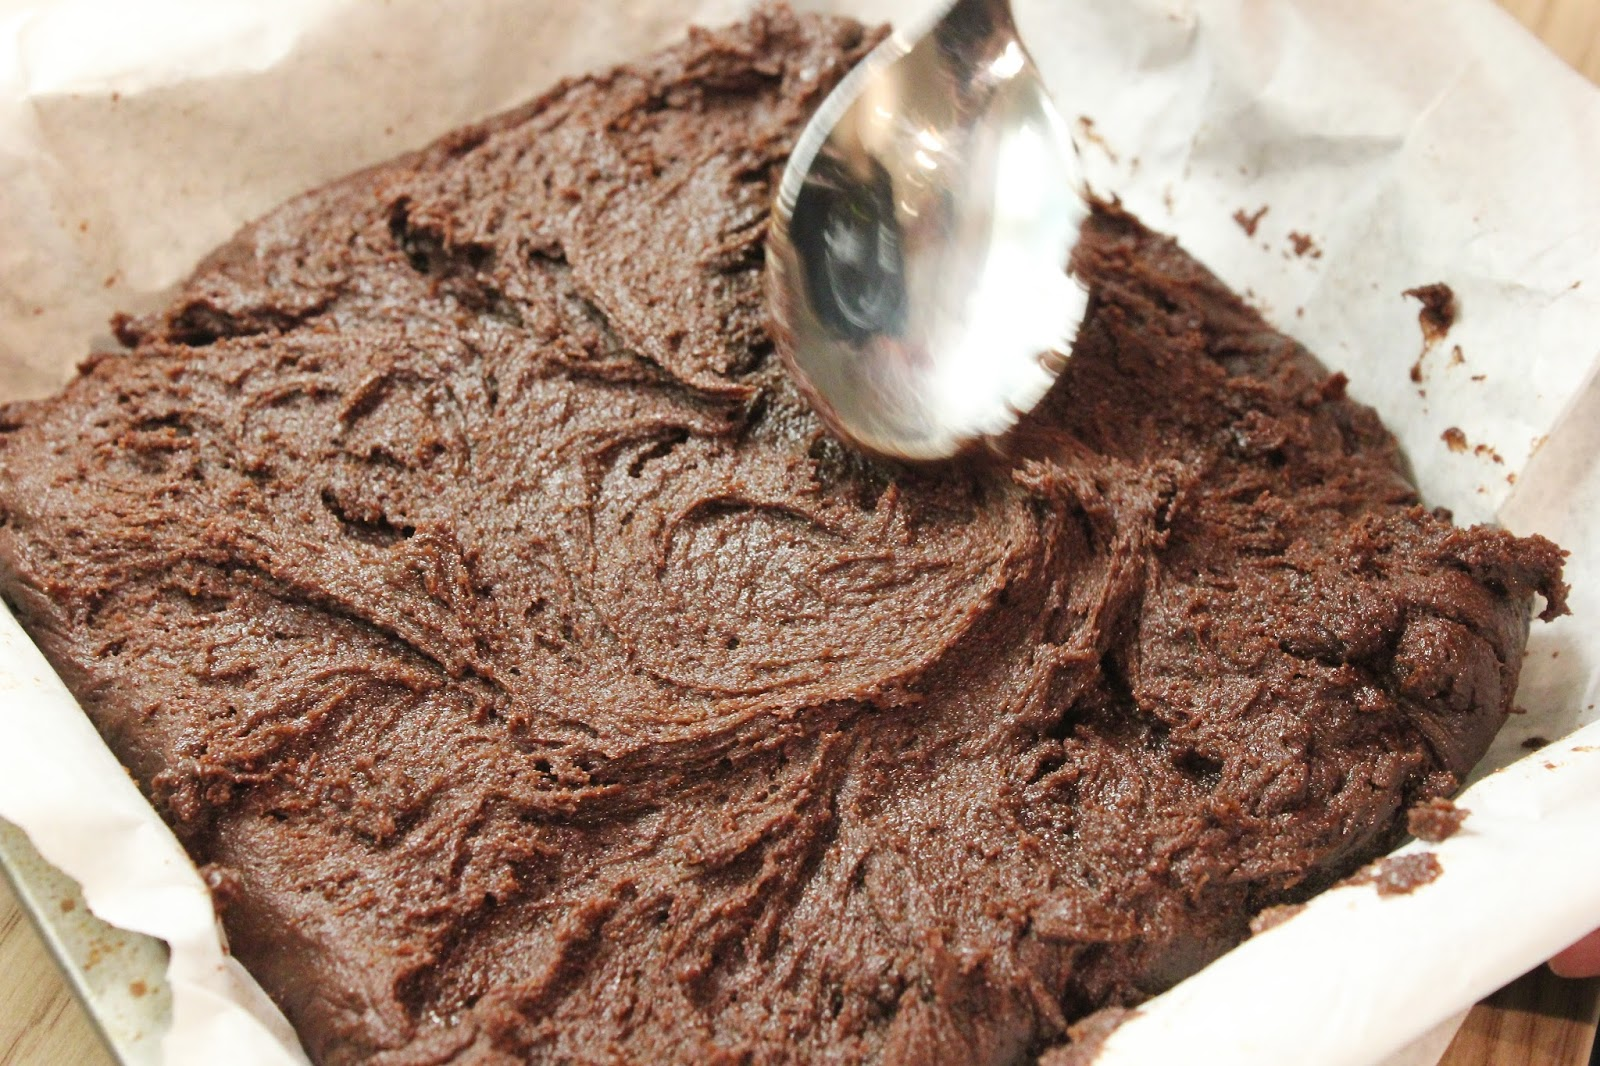 georgie minter-brown, actress, blogger, baking, chocolate brownies, recipe, delicious alchemy, gluten free